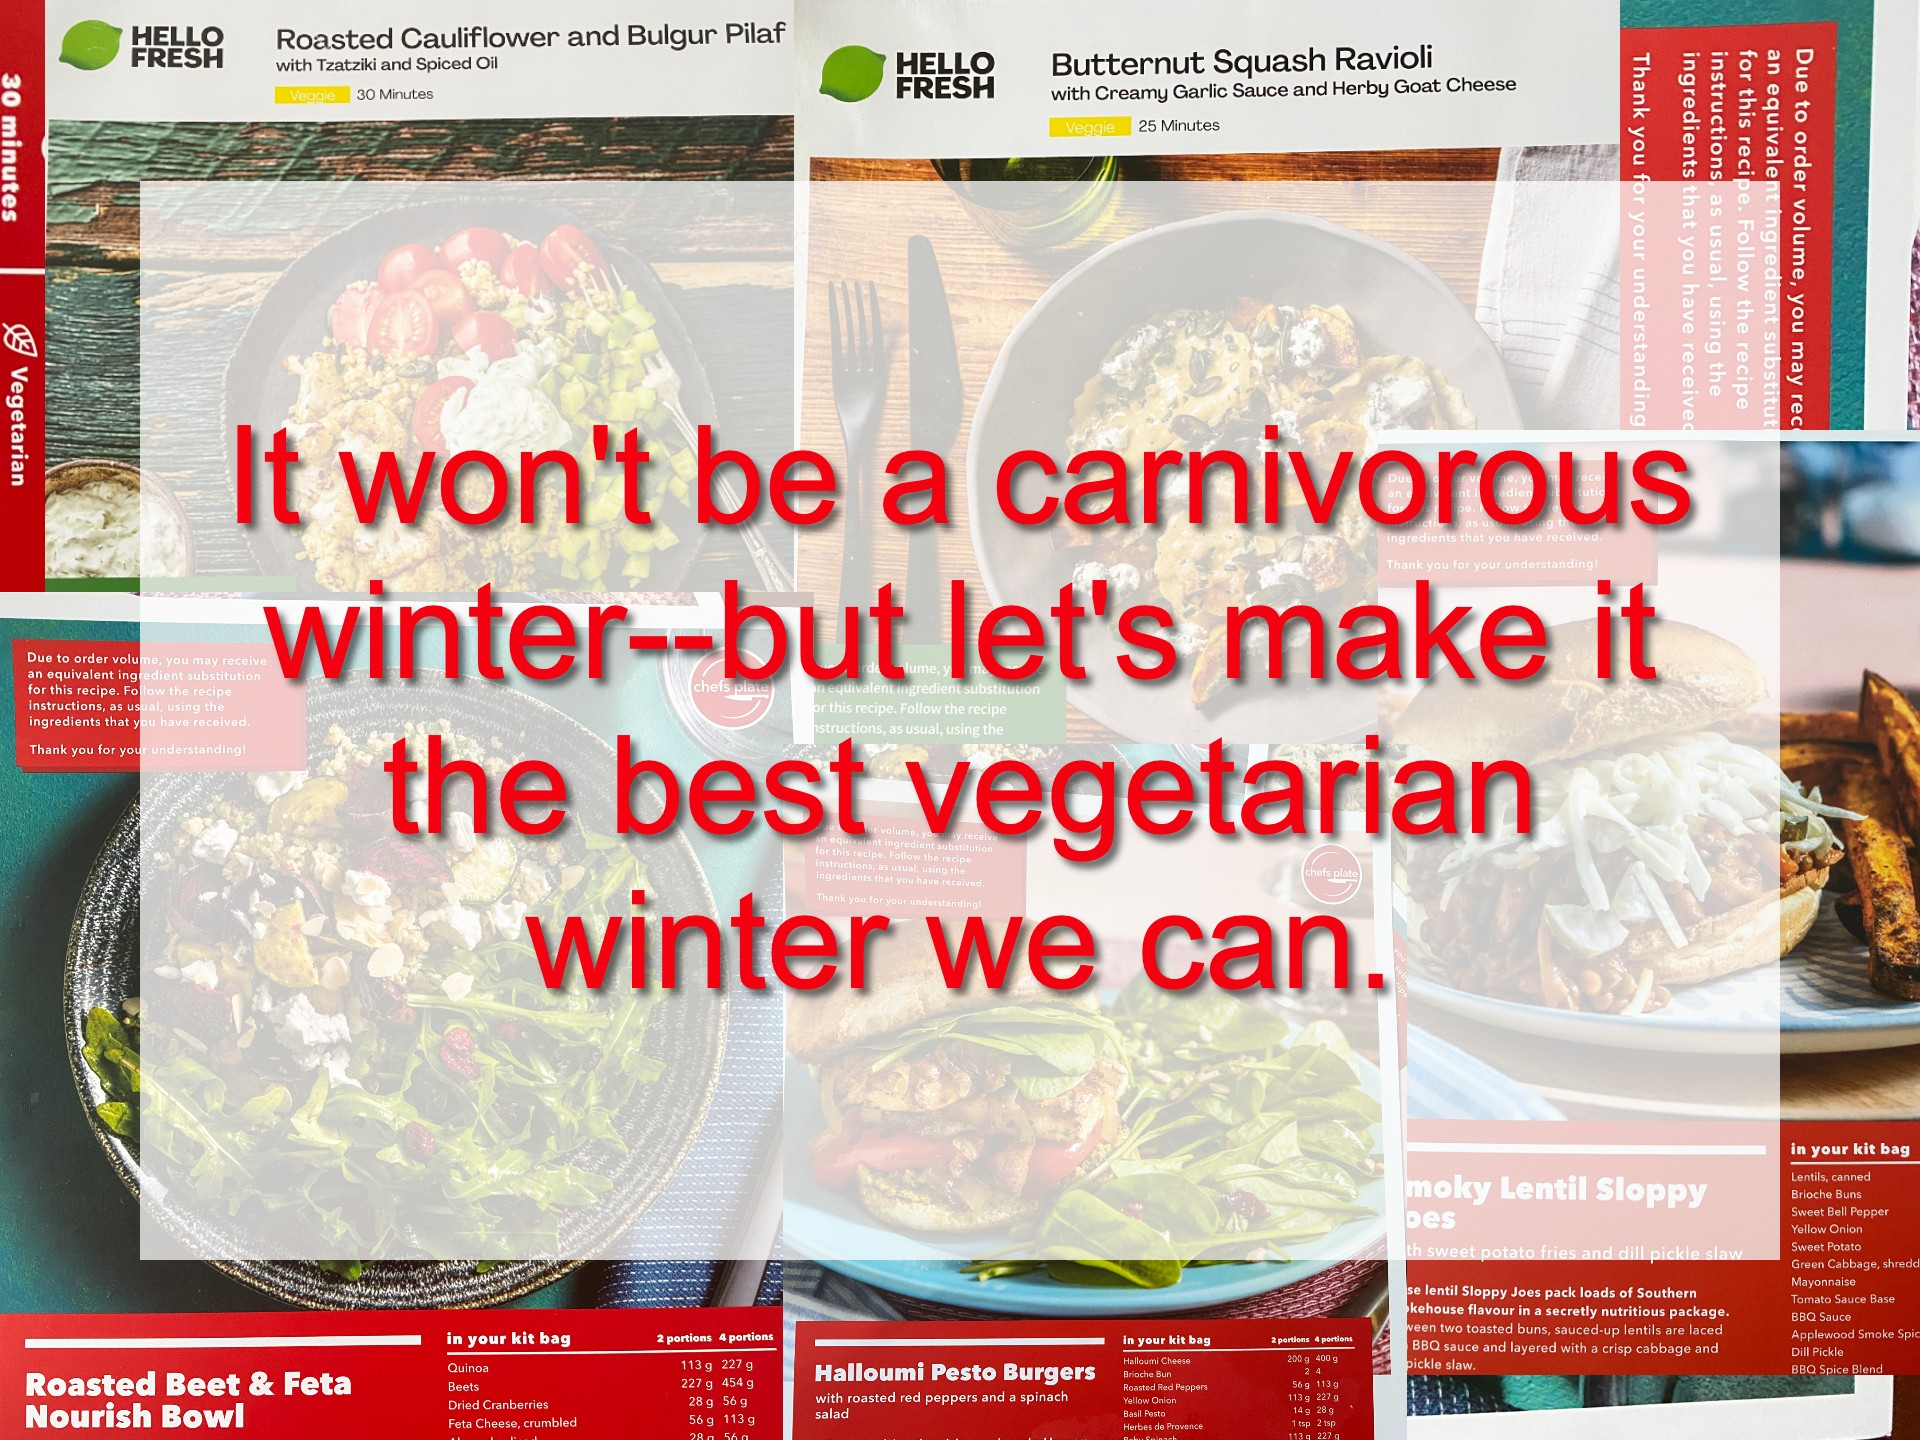 It won't be a carnivorous winter, but let's make it the best vegetarian winter we can